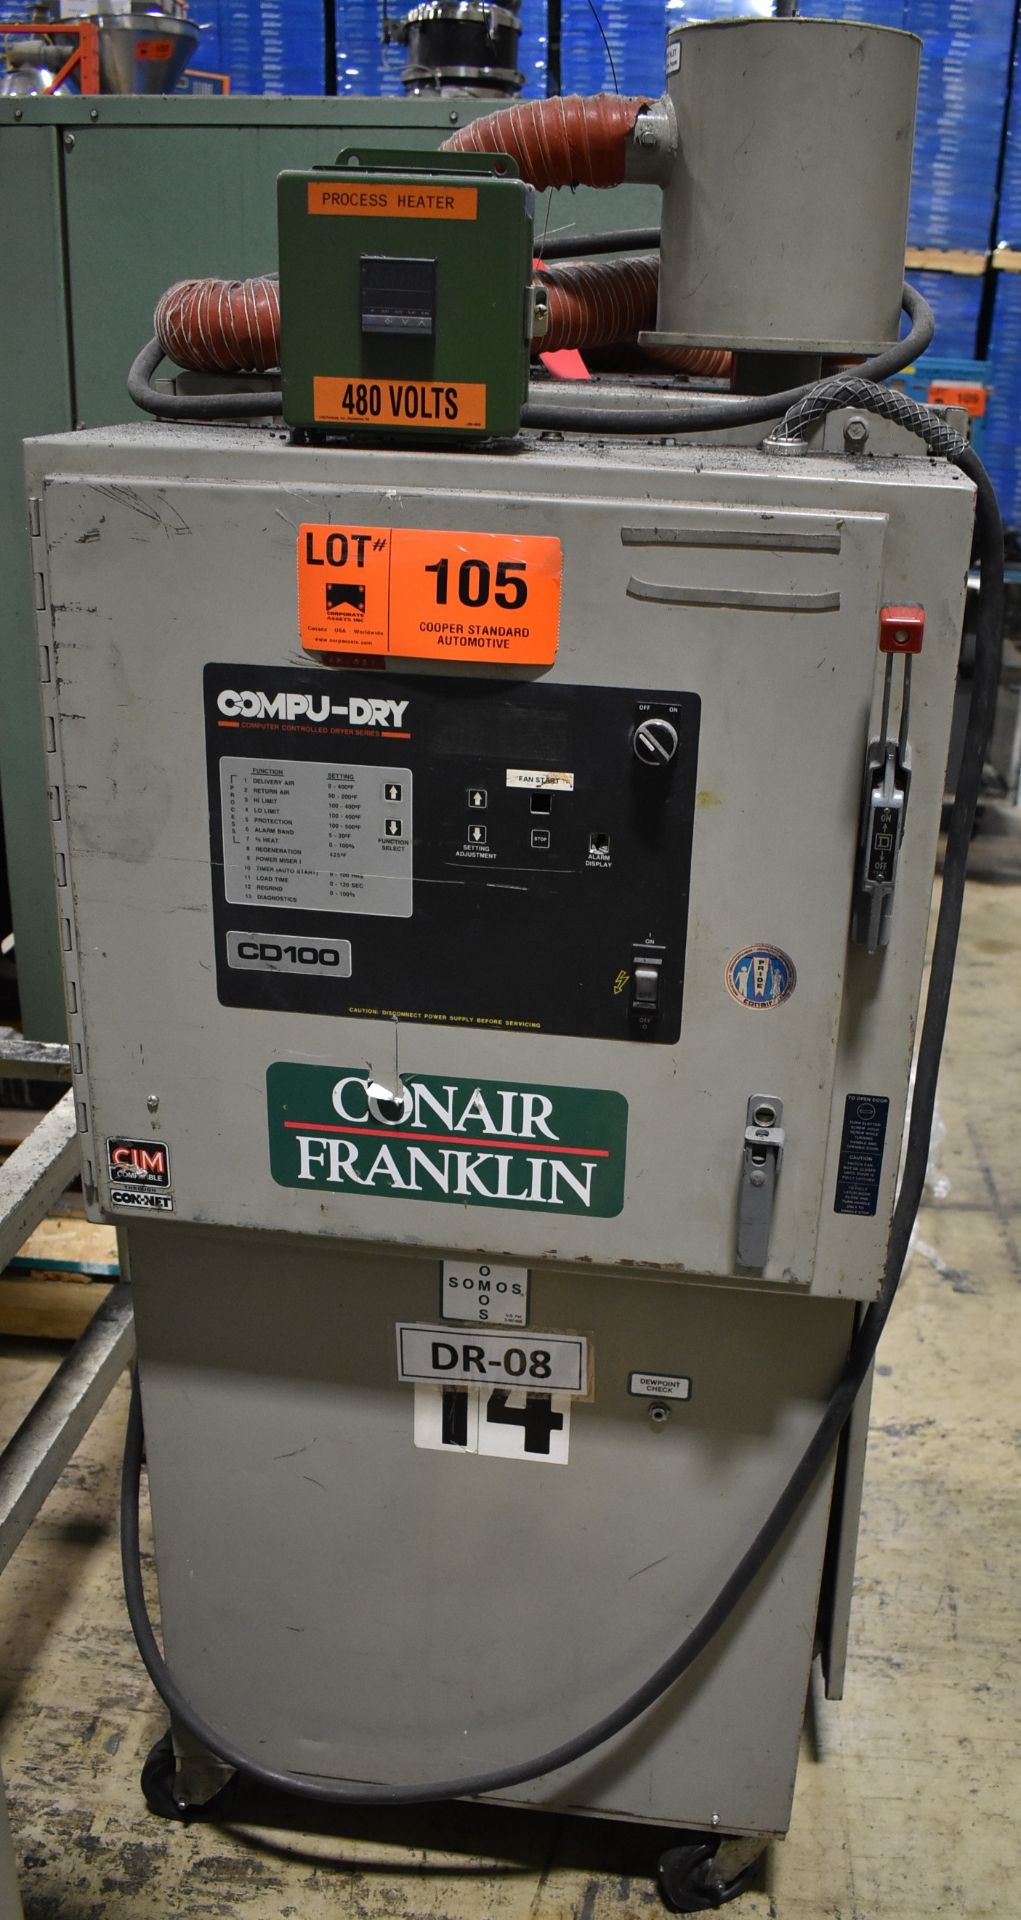 CONAIR D01H4001B10A DEHUMIDIFYING DRYER, S/N: 9D1384 (LOCATED IN BRAMPTON, ON) [RIGGING FEES FOR LOT